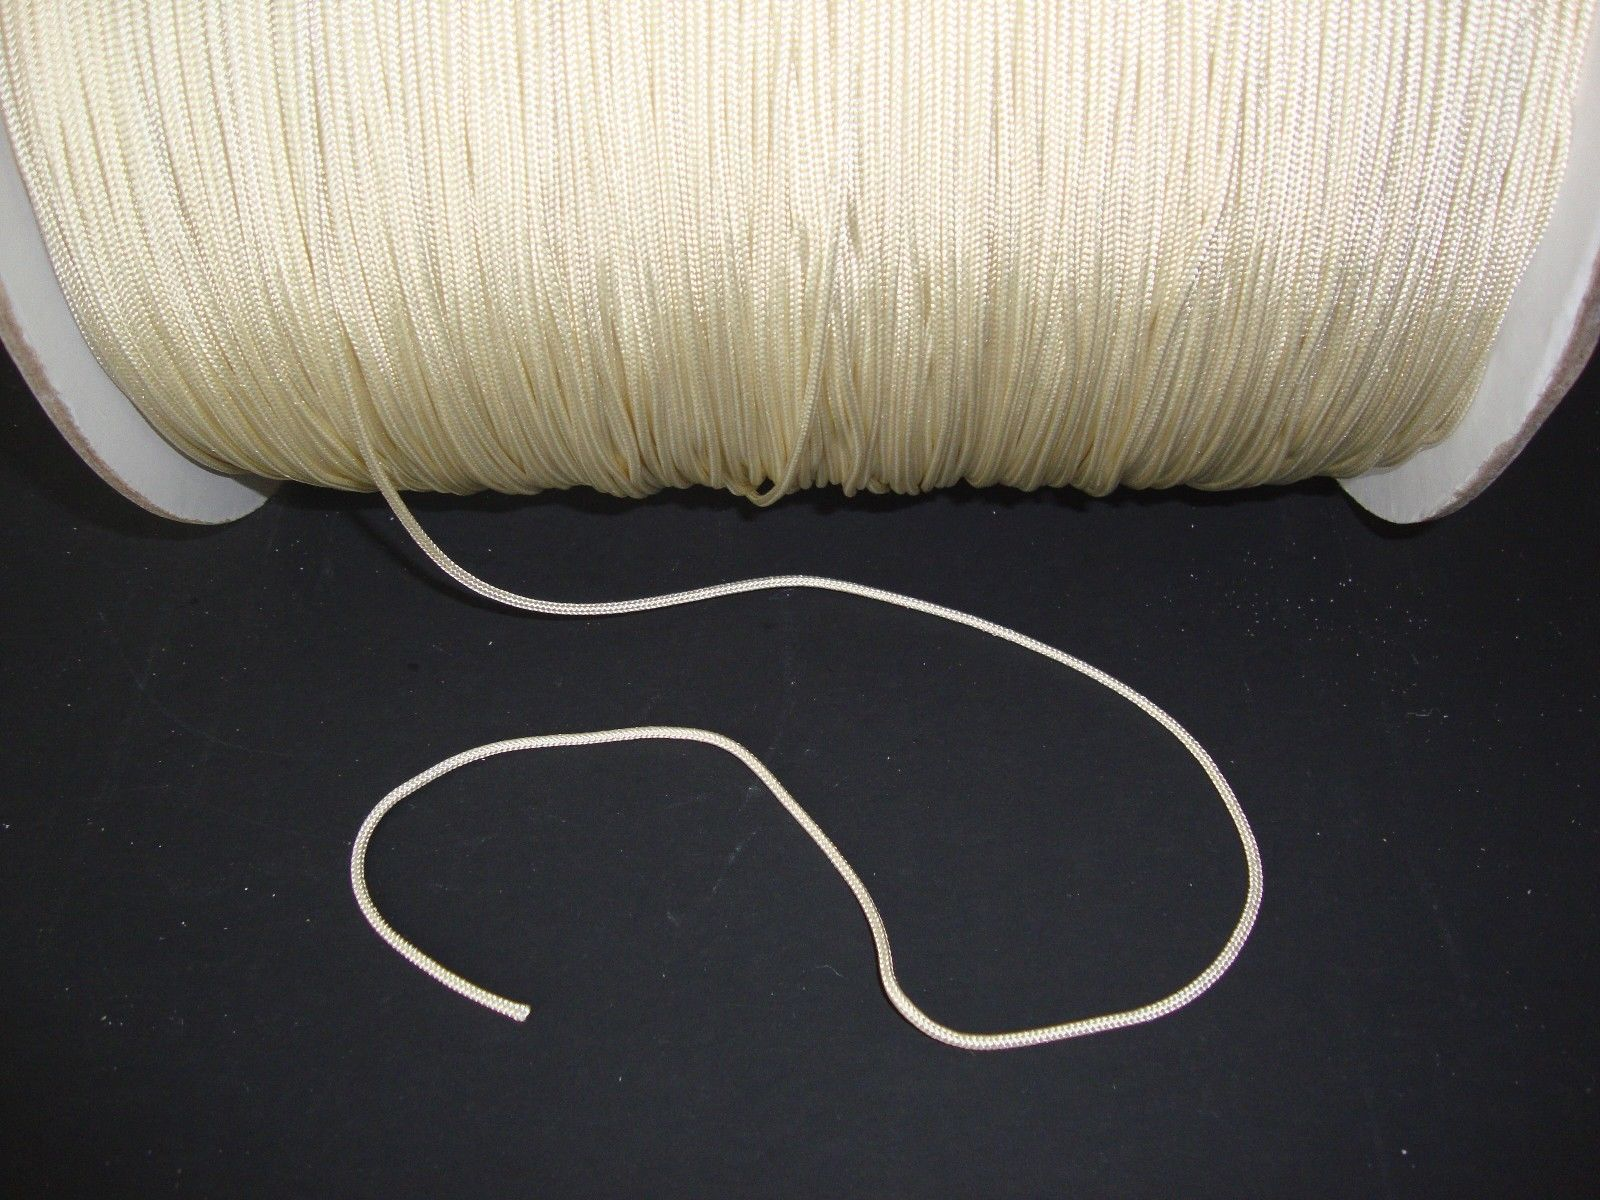 10 YARDS: 1.8mm ALABASTER LIFT CORD for Blinds, Roman Shades and More